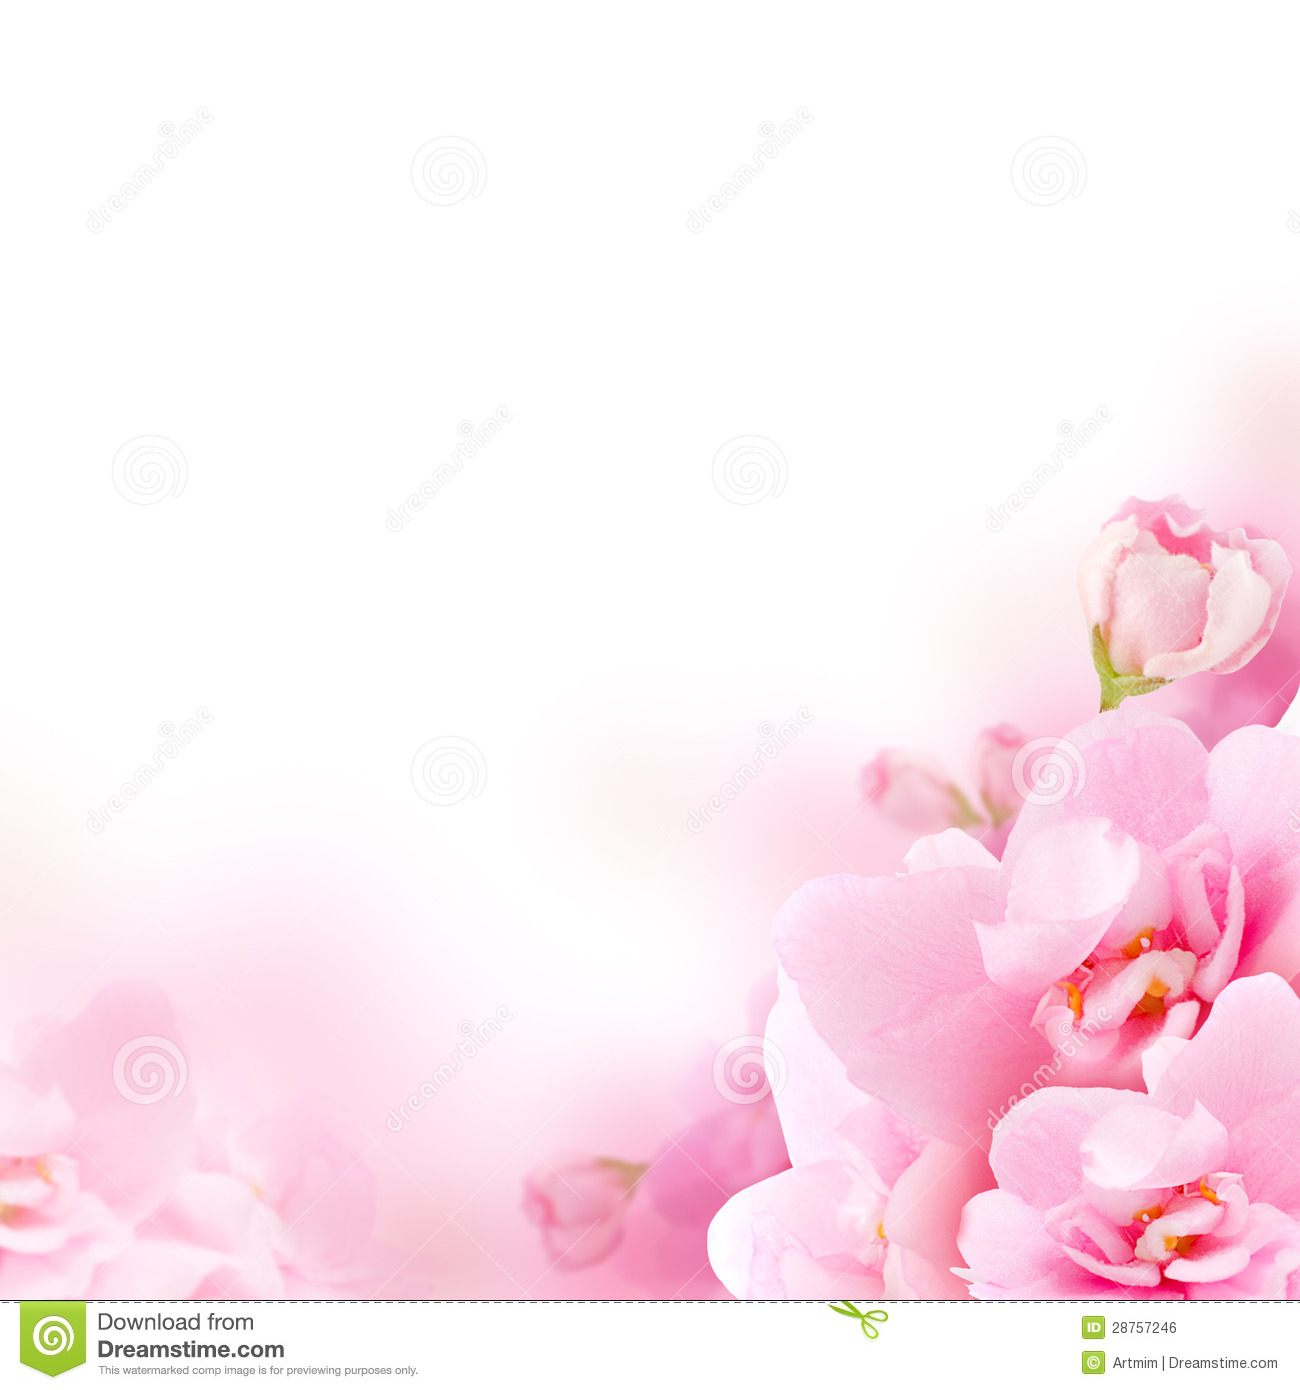 Blossom pink flower floral background stock photo image of download blossom pink flower floral background stock photo image of blooming tropical mightylinksfo